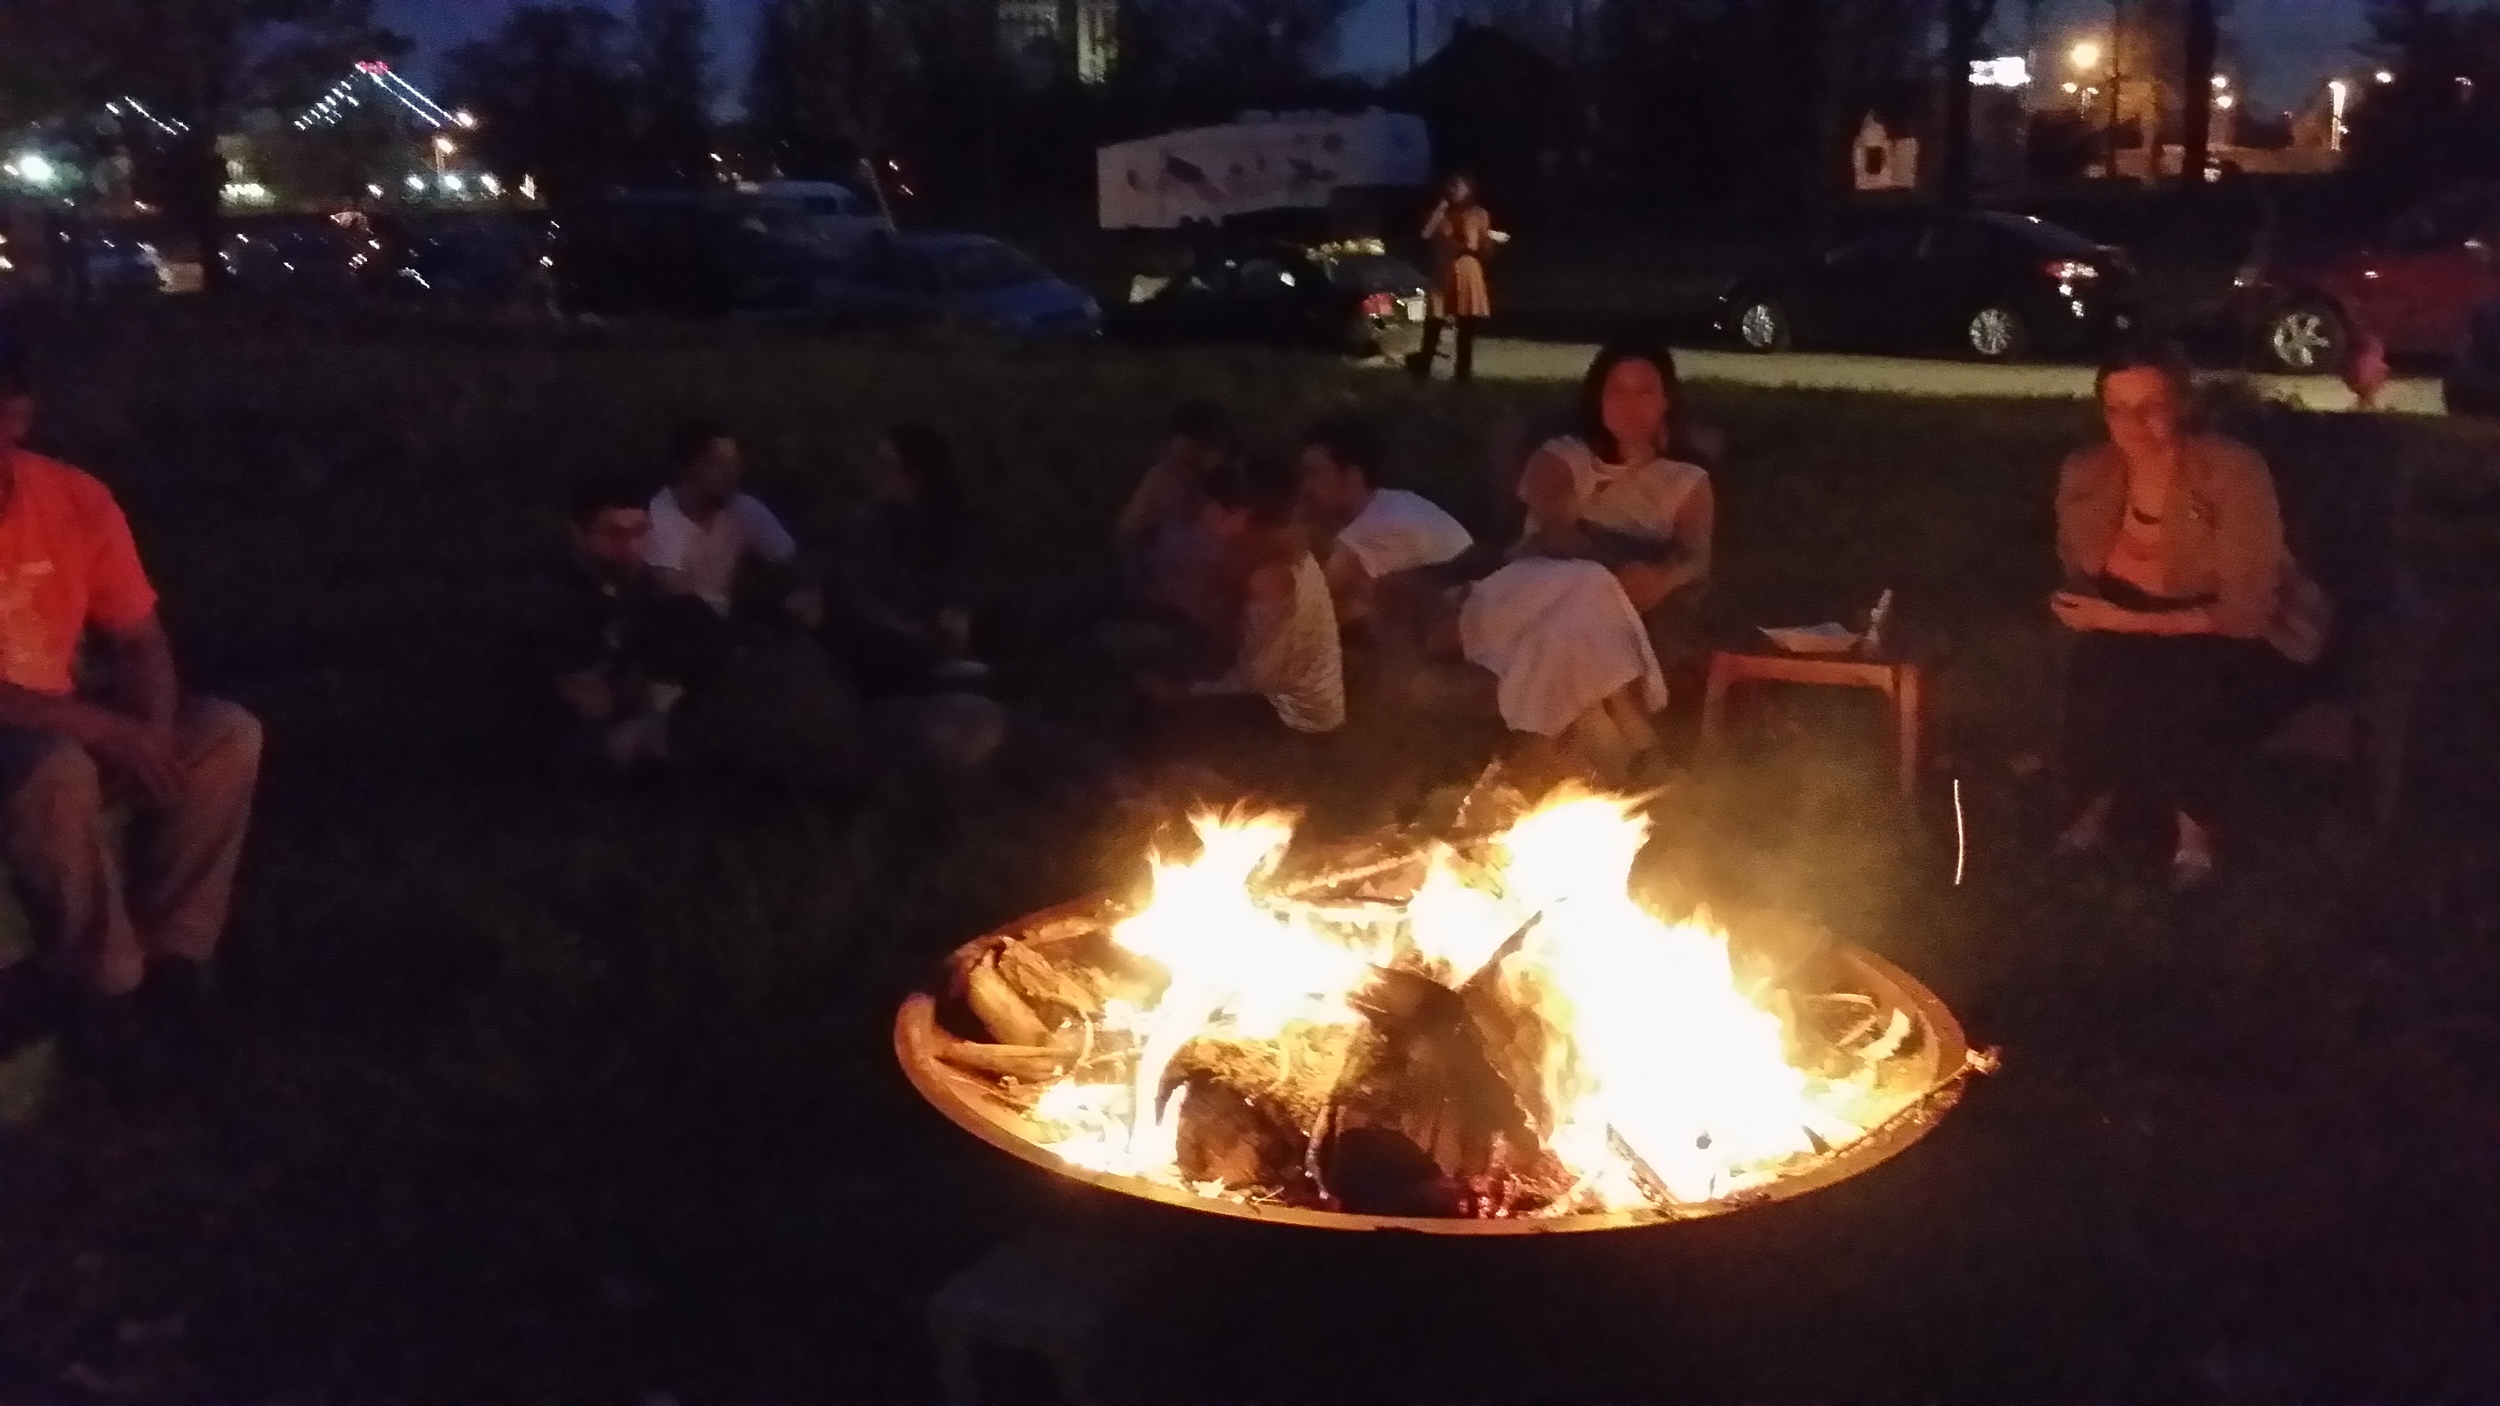 the bonfire! always nice to gather around it, now more necessary than ever